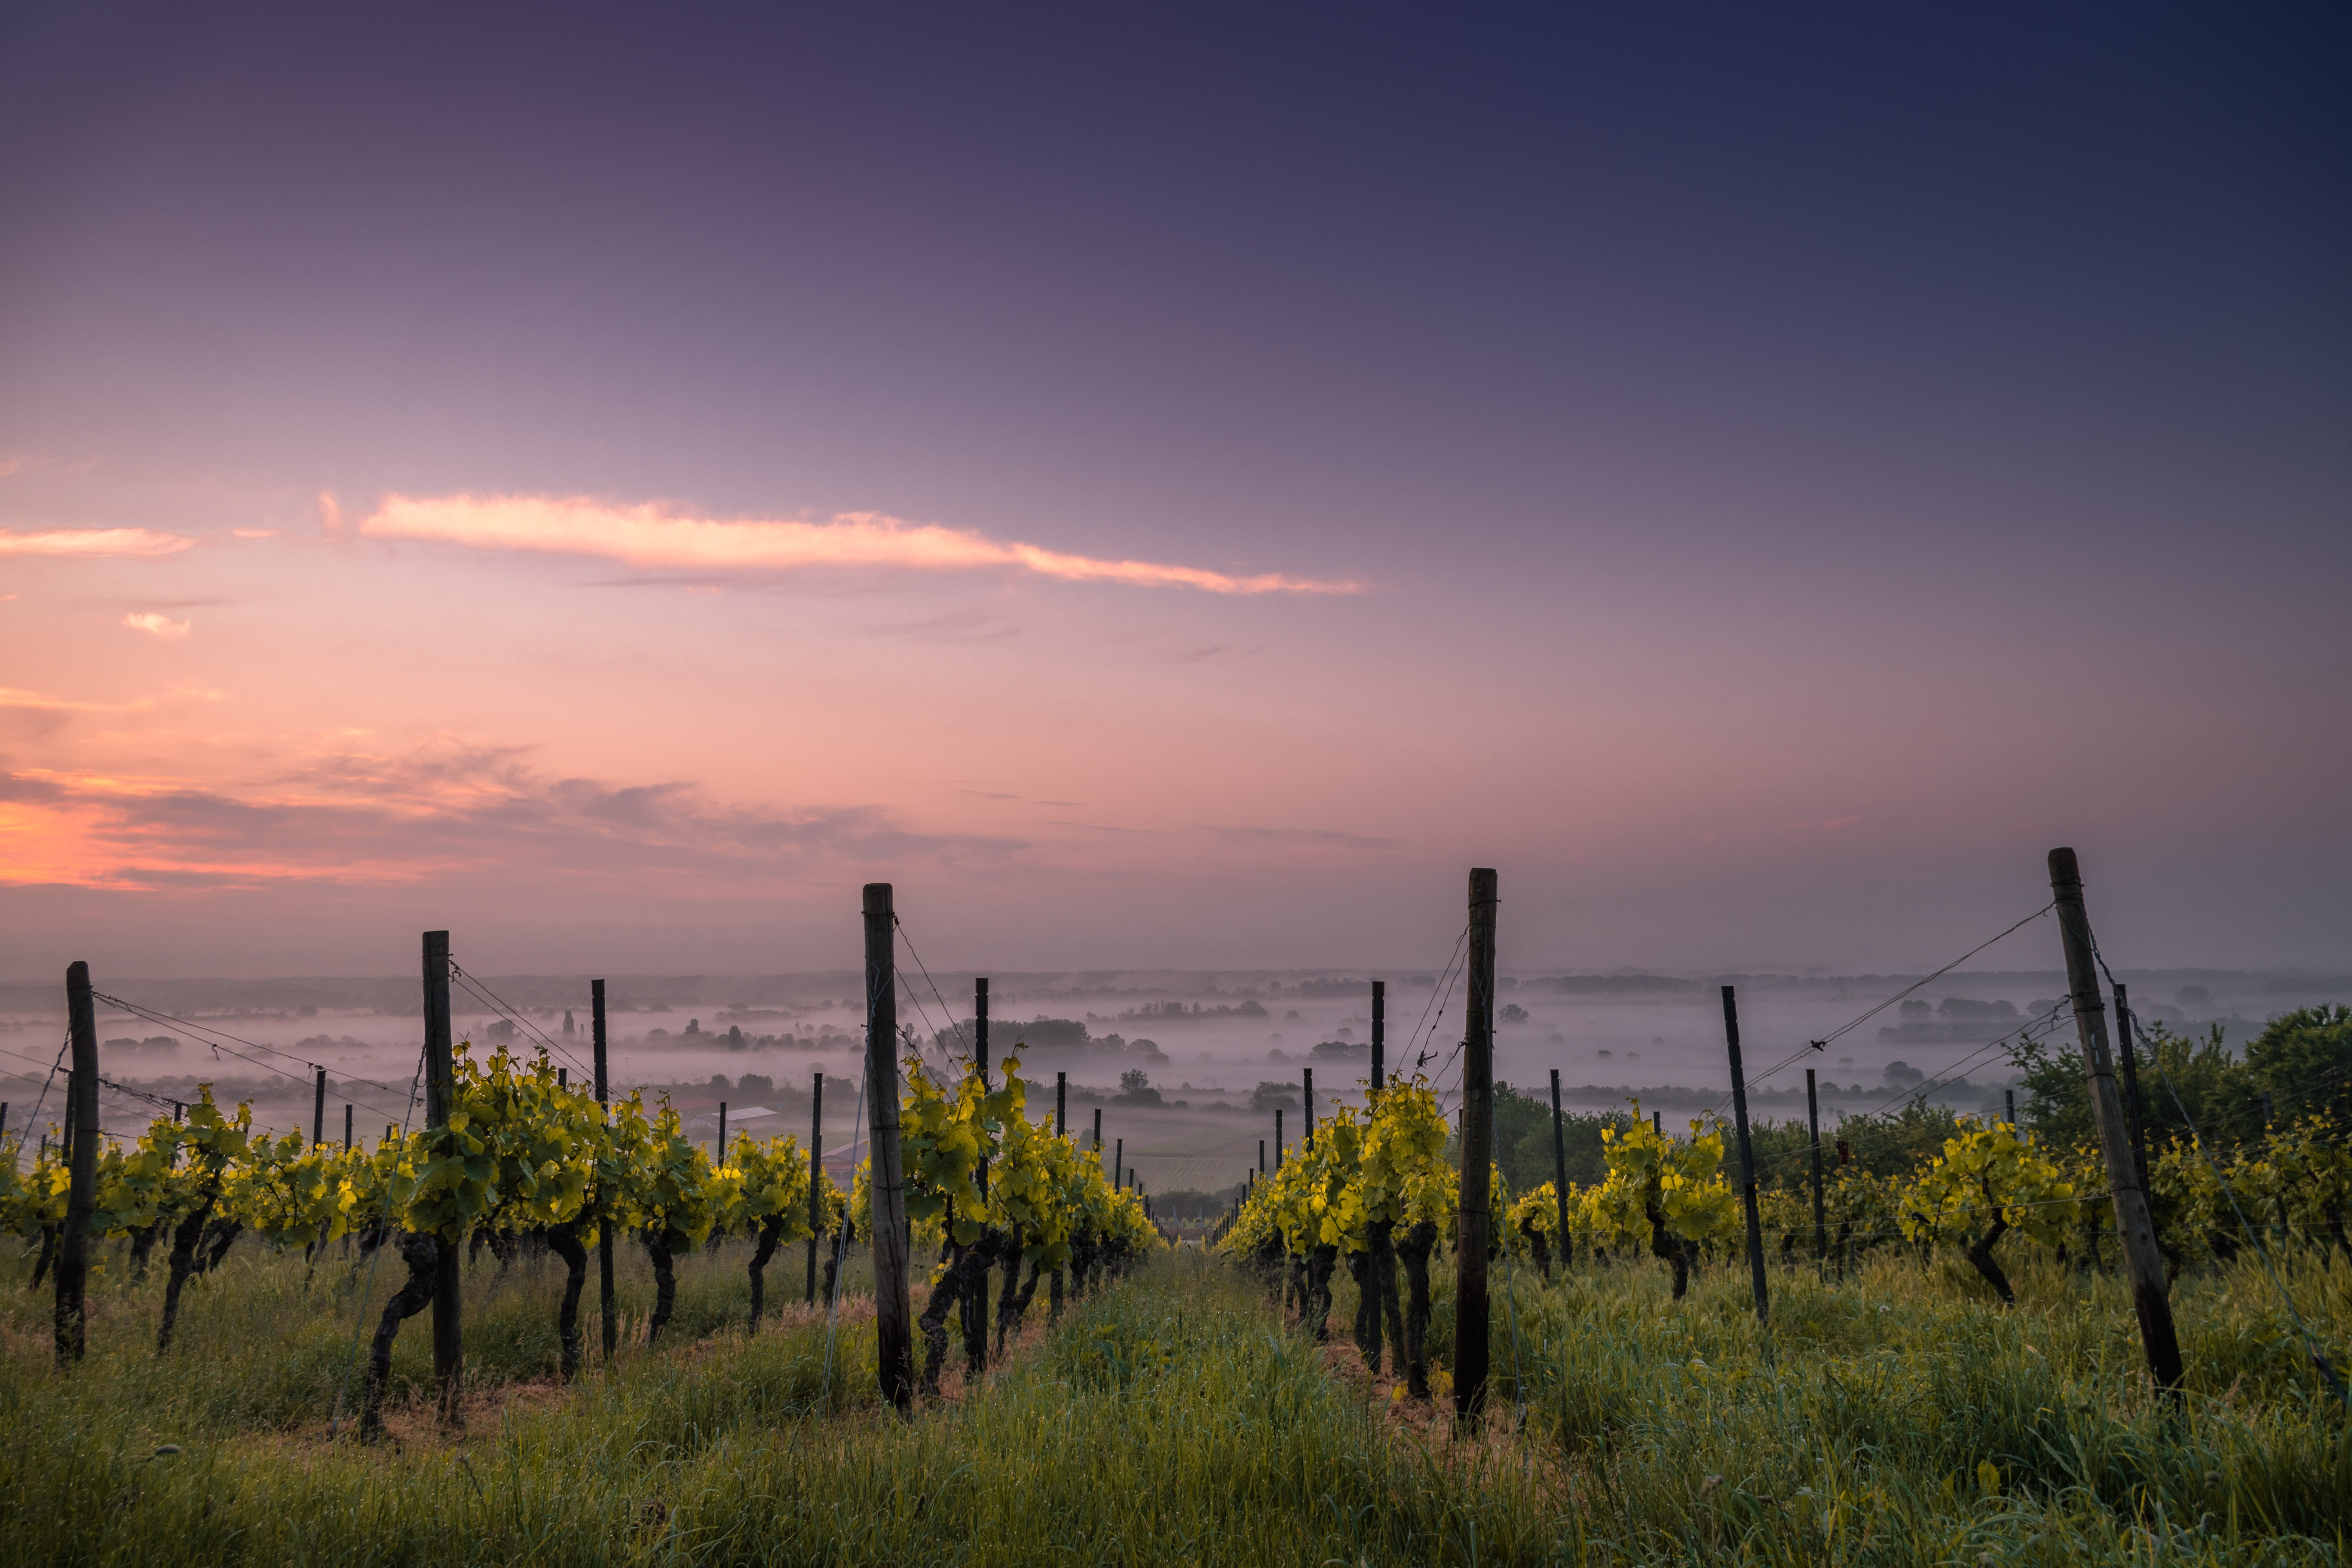 Vineyard during sunset